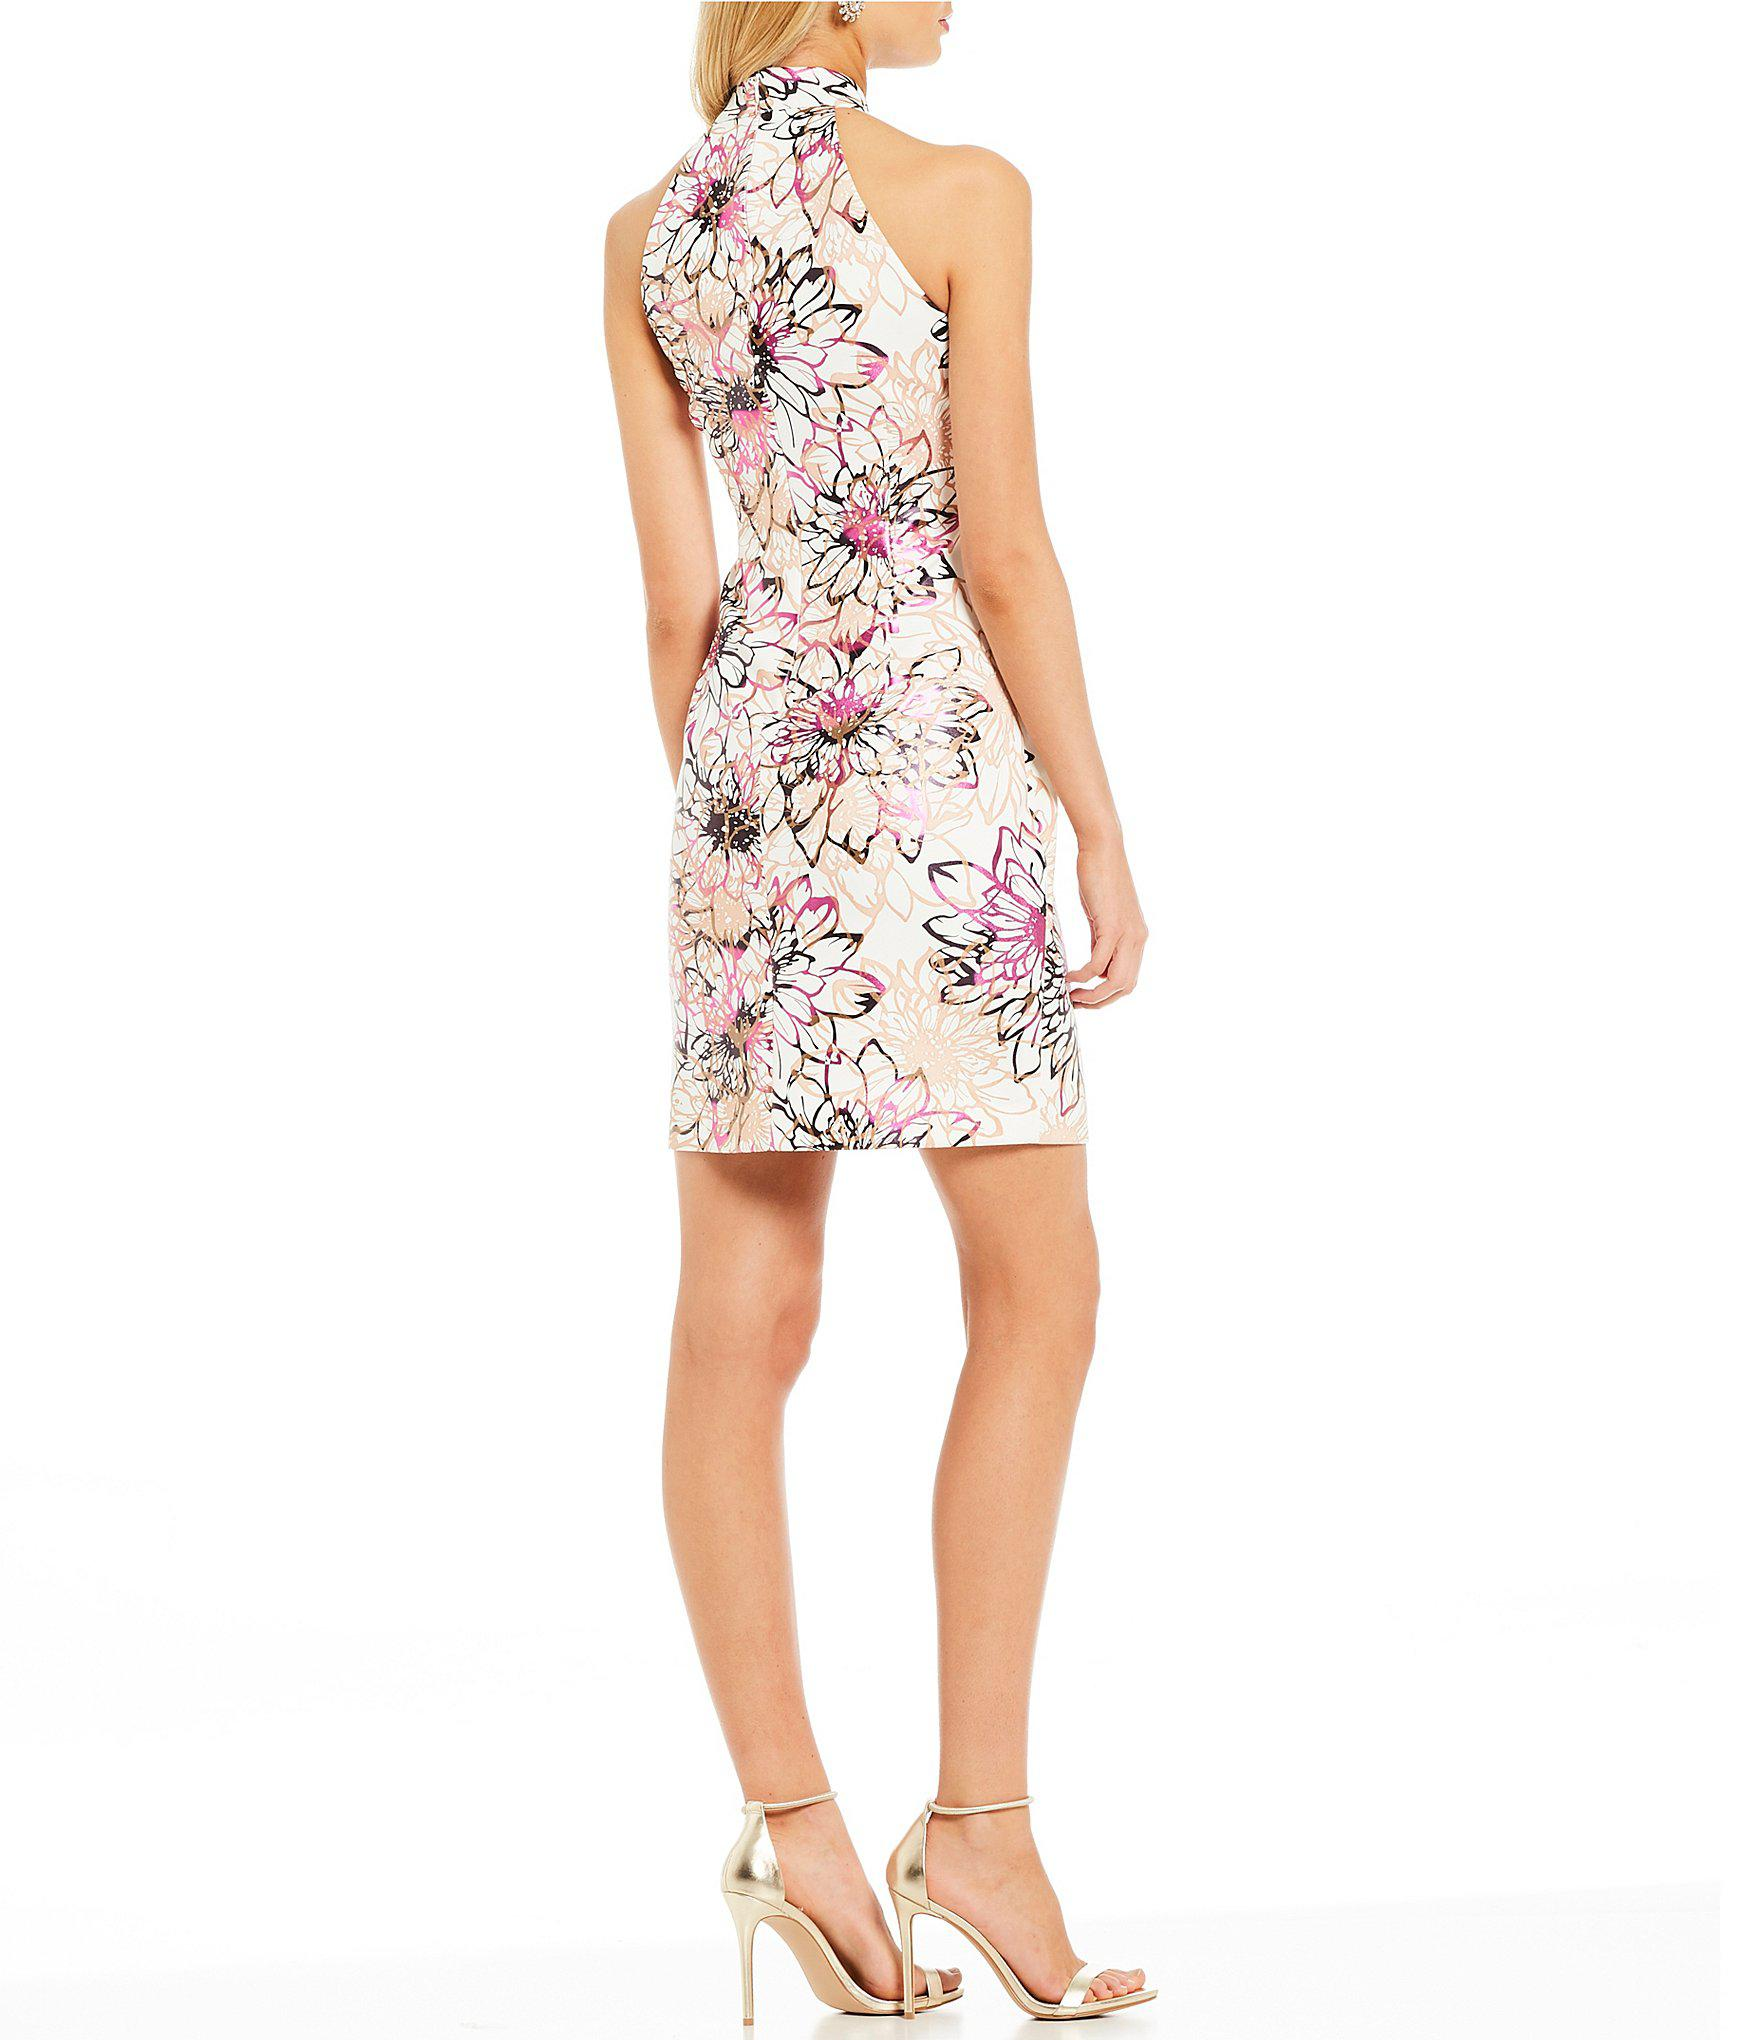 a009ad8d1d8 Belle By Badgley Mischka - White Mock Neck Floral Print Cocktail Dress -  Lyst. View fullscreen